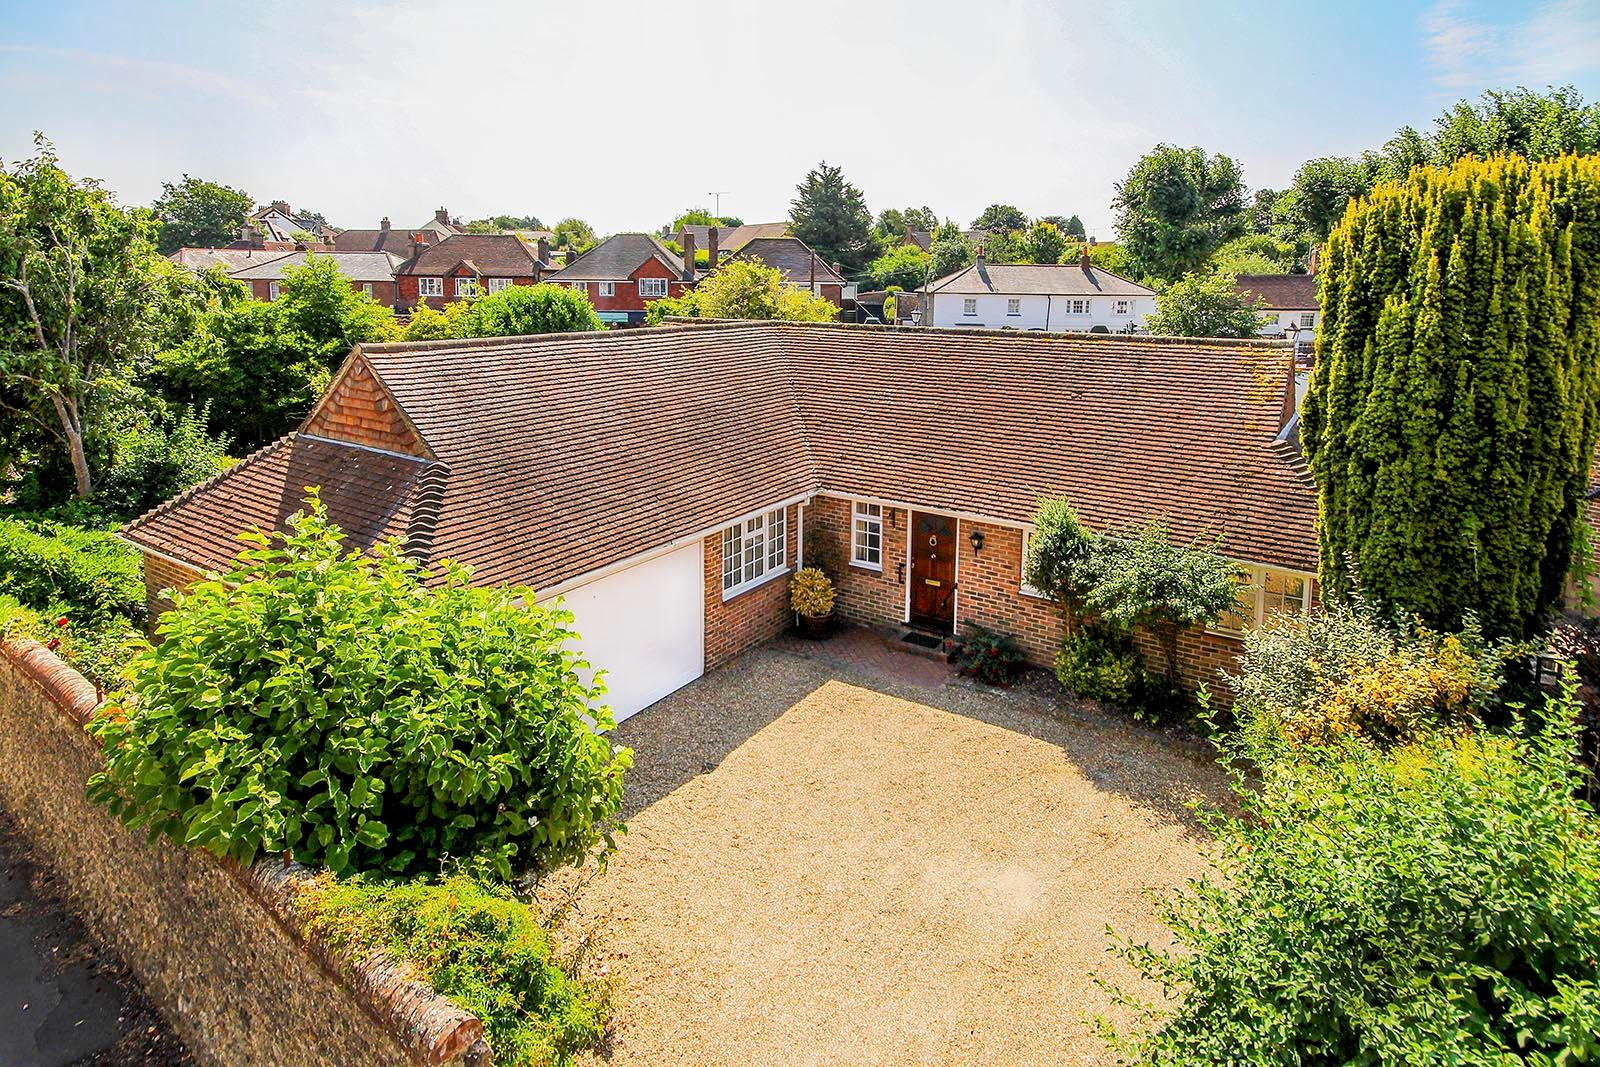 3 bed Bungalow for sale in Angmering - Property Image 1